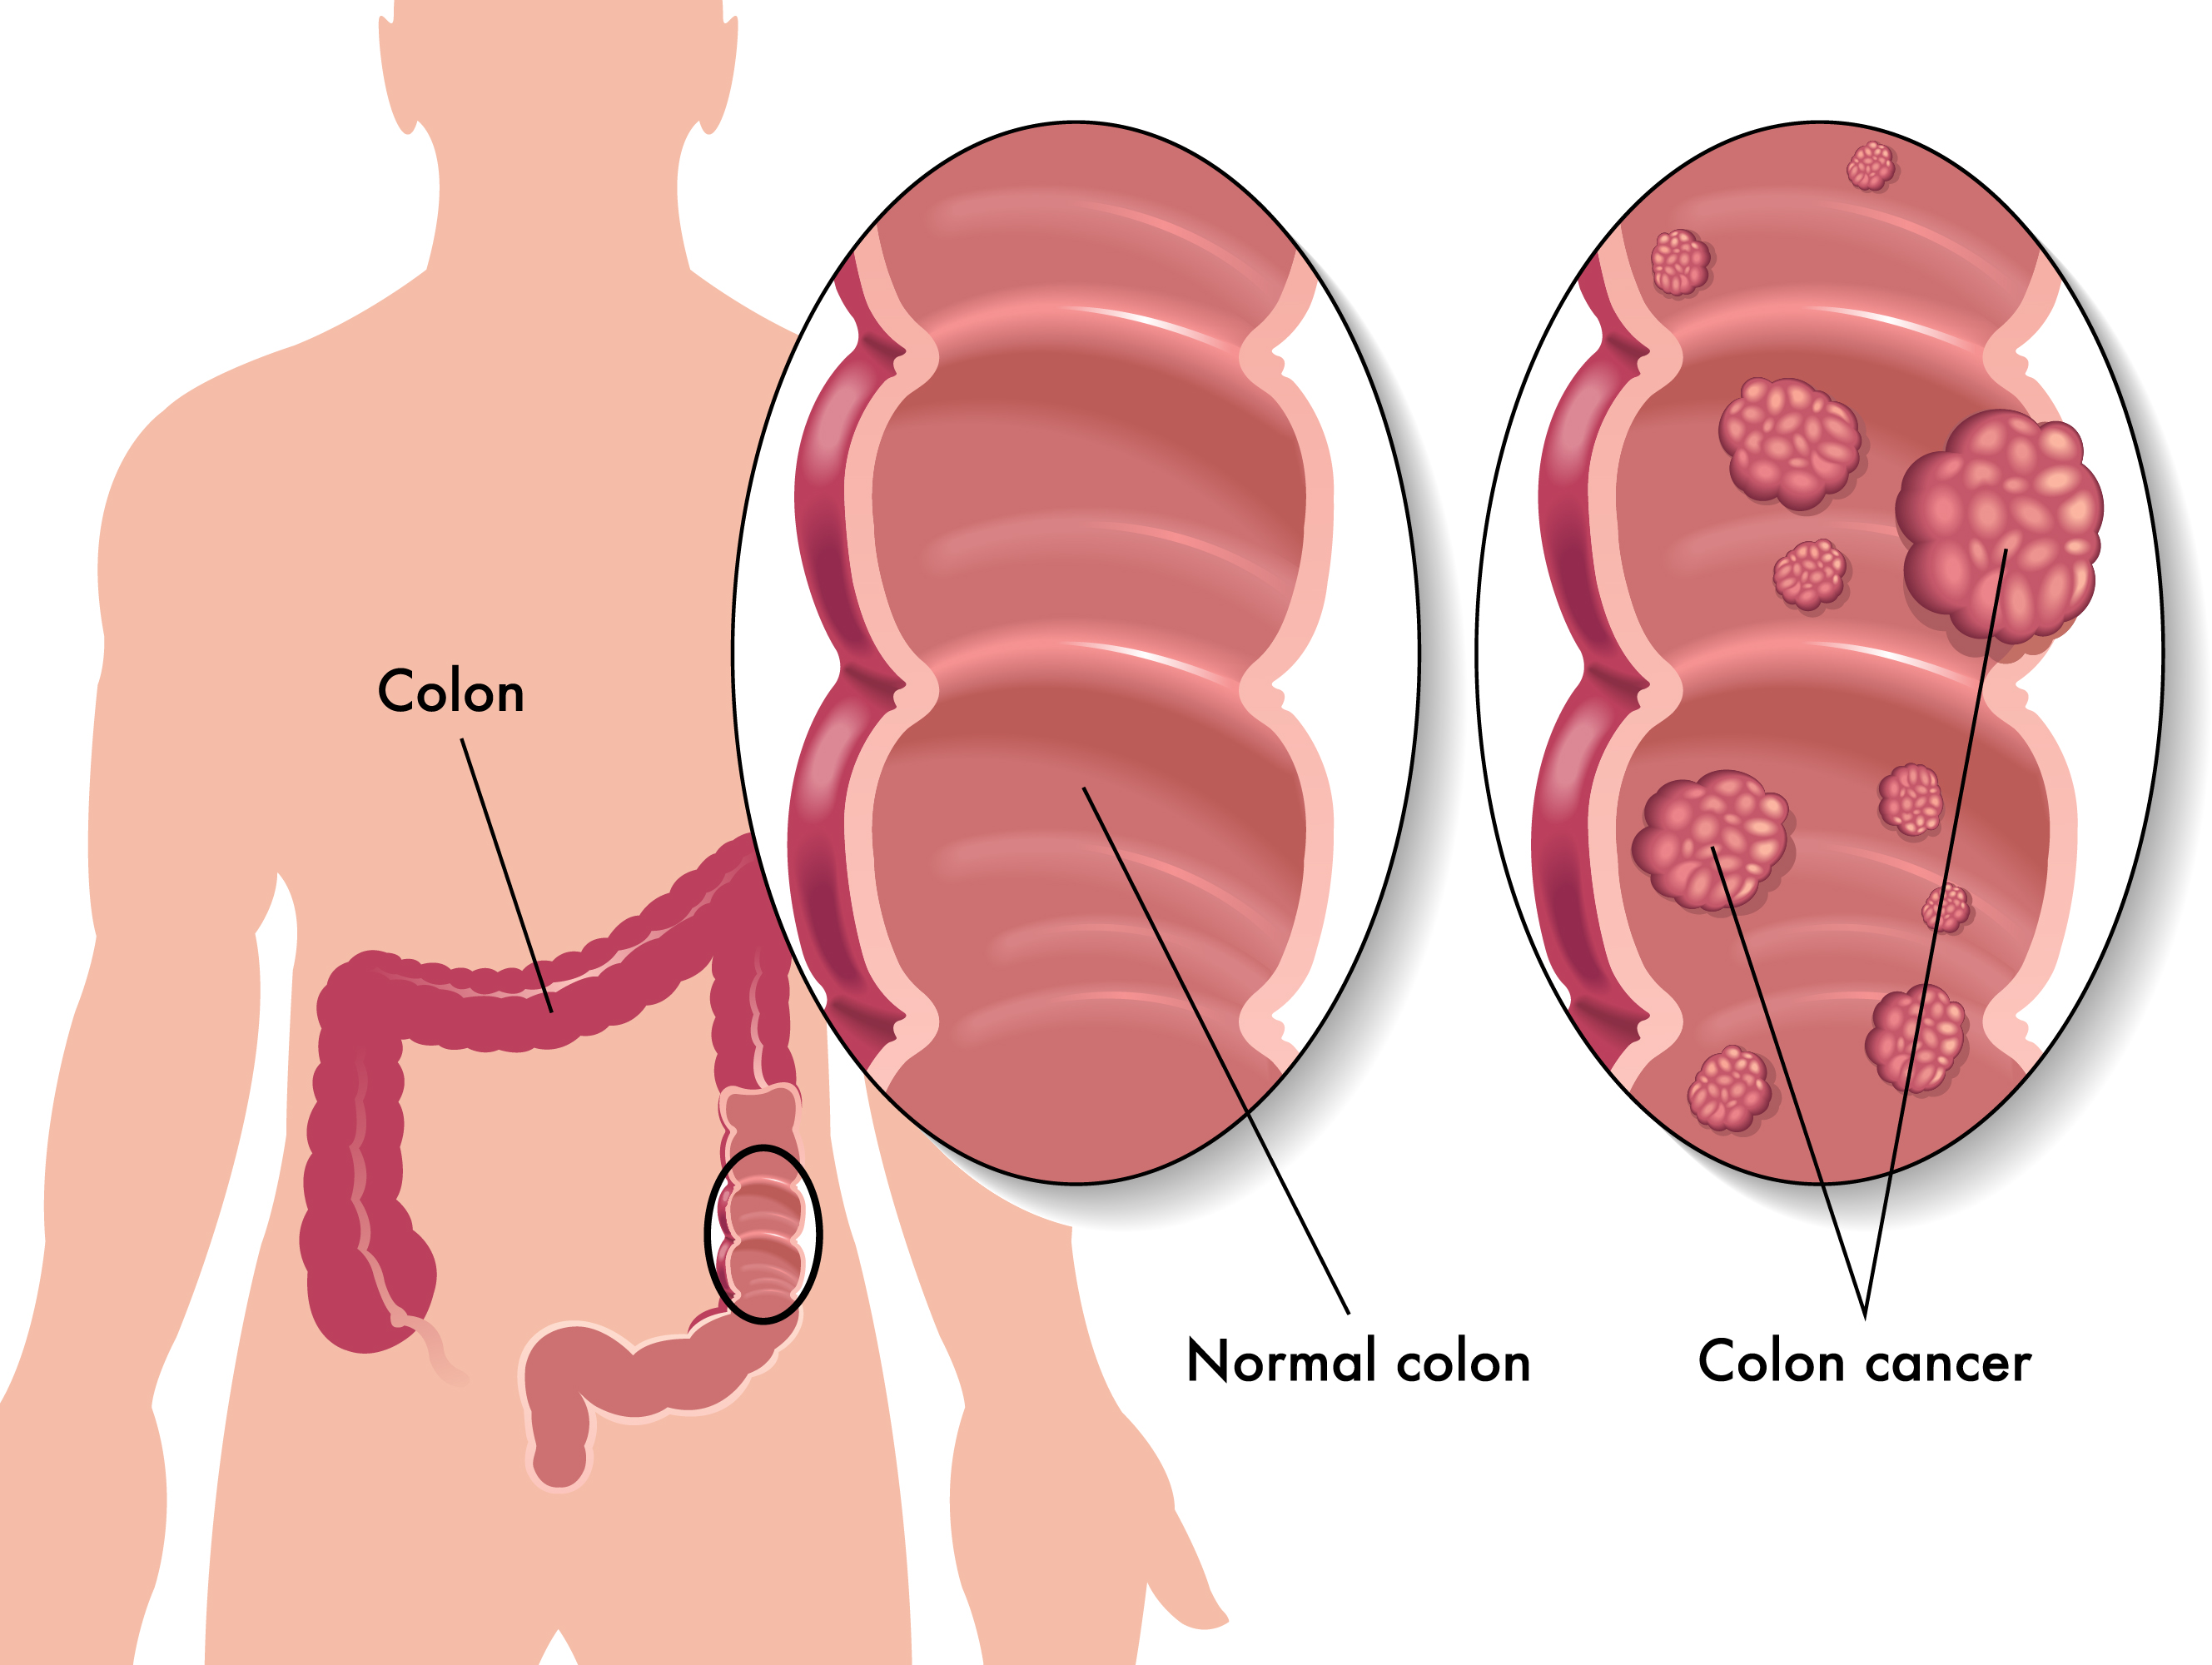 Diagnosis of colorectal cancer